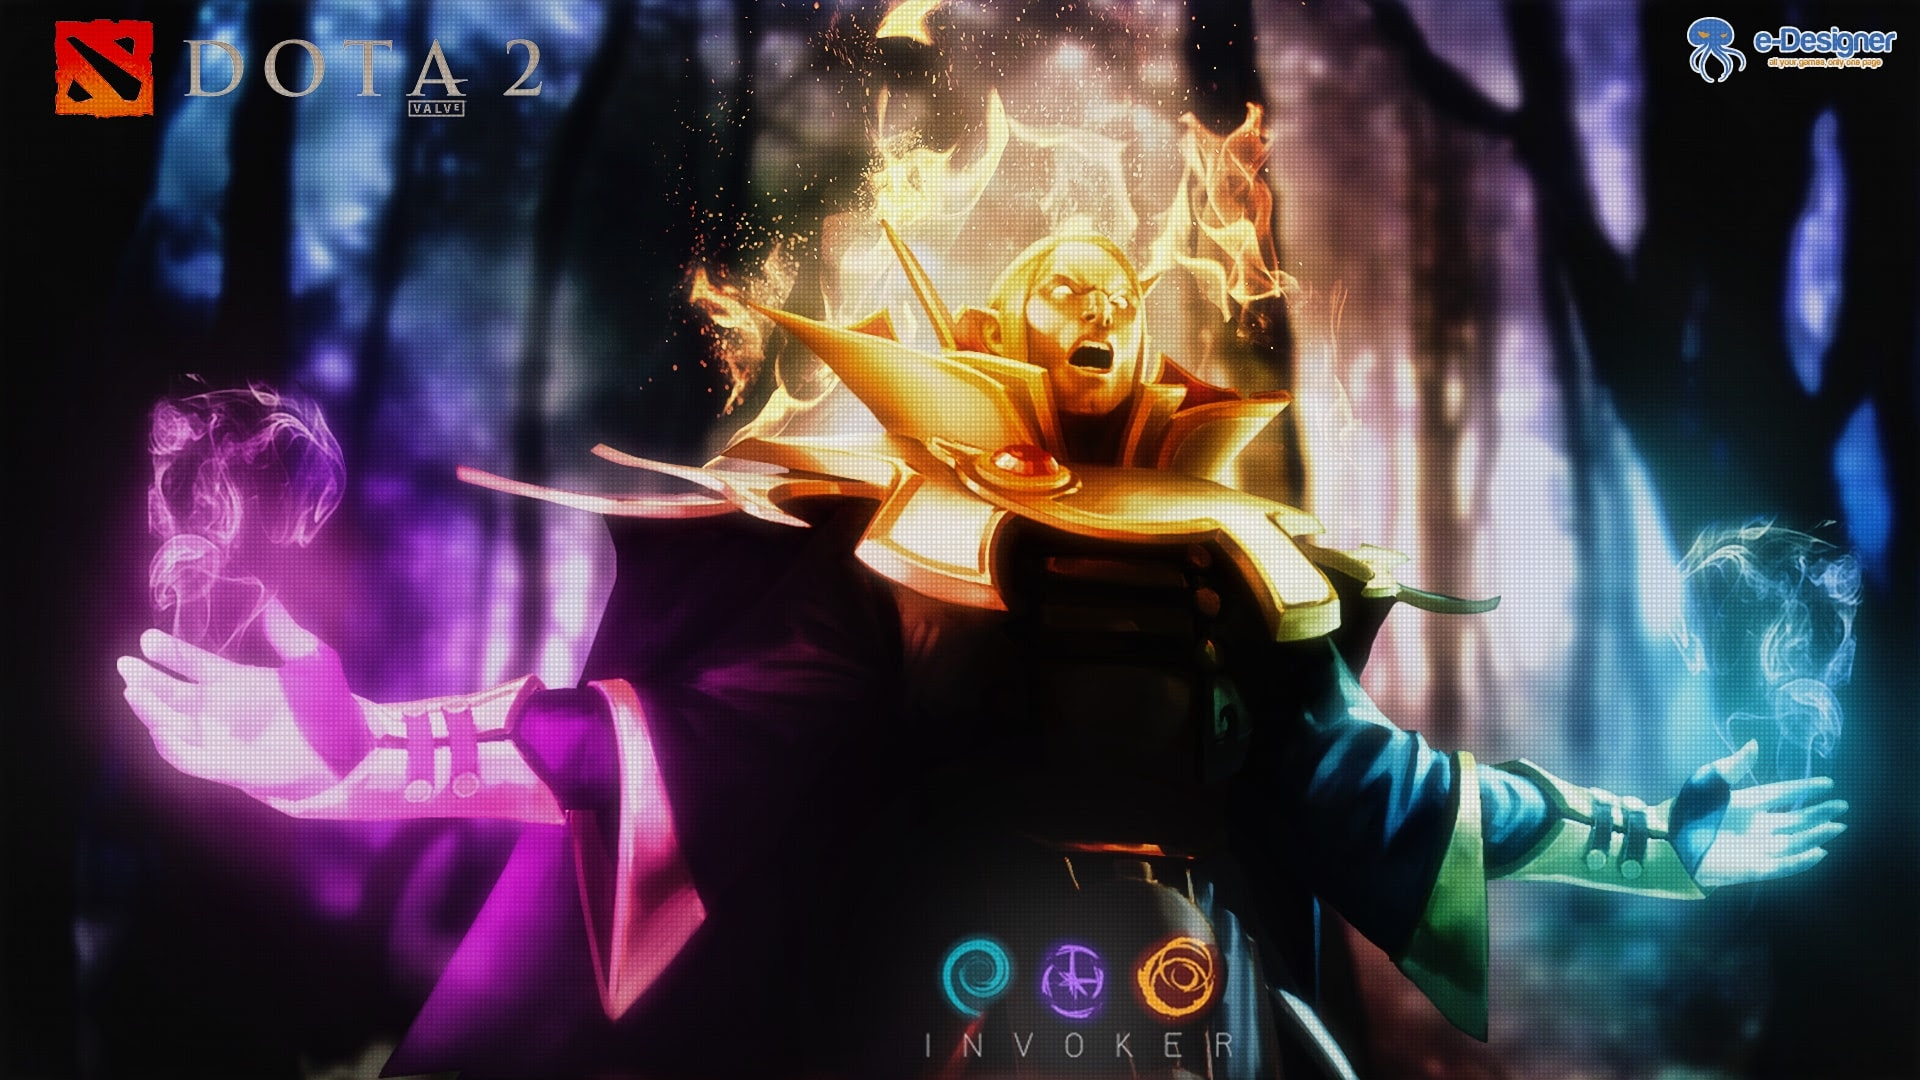 Ultra Hd Dota 2 Invoker Wallpaper